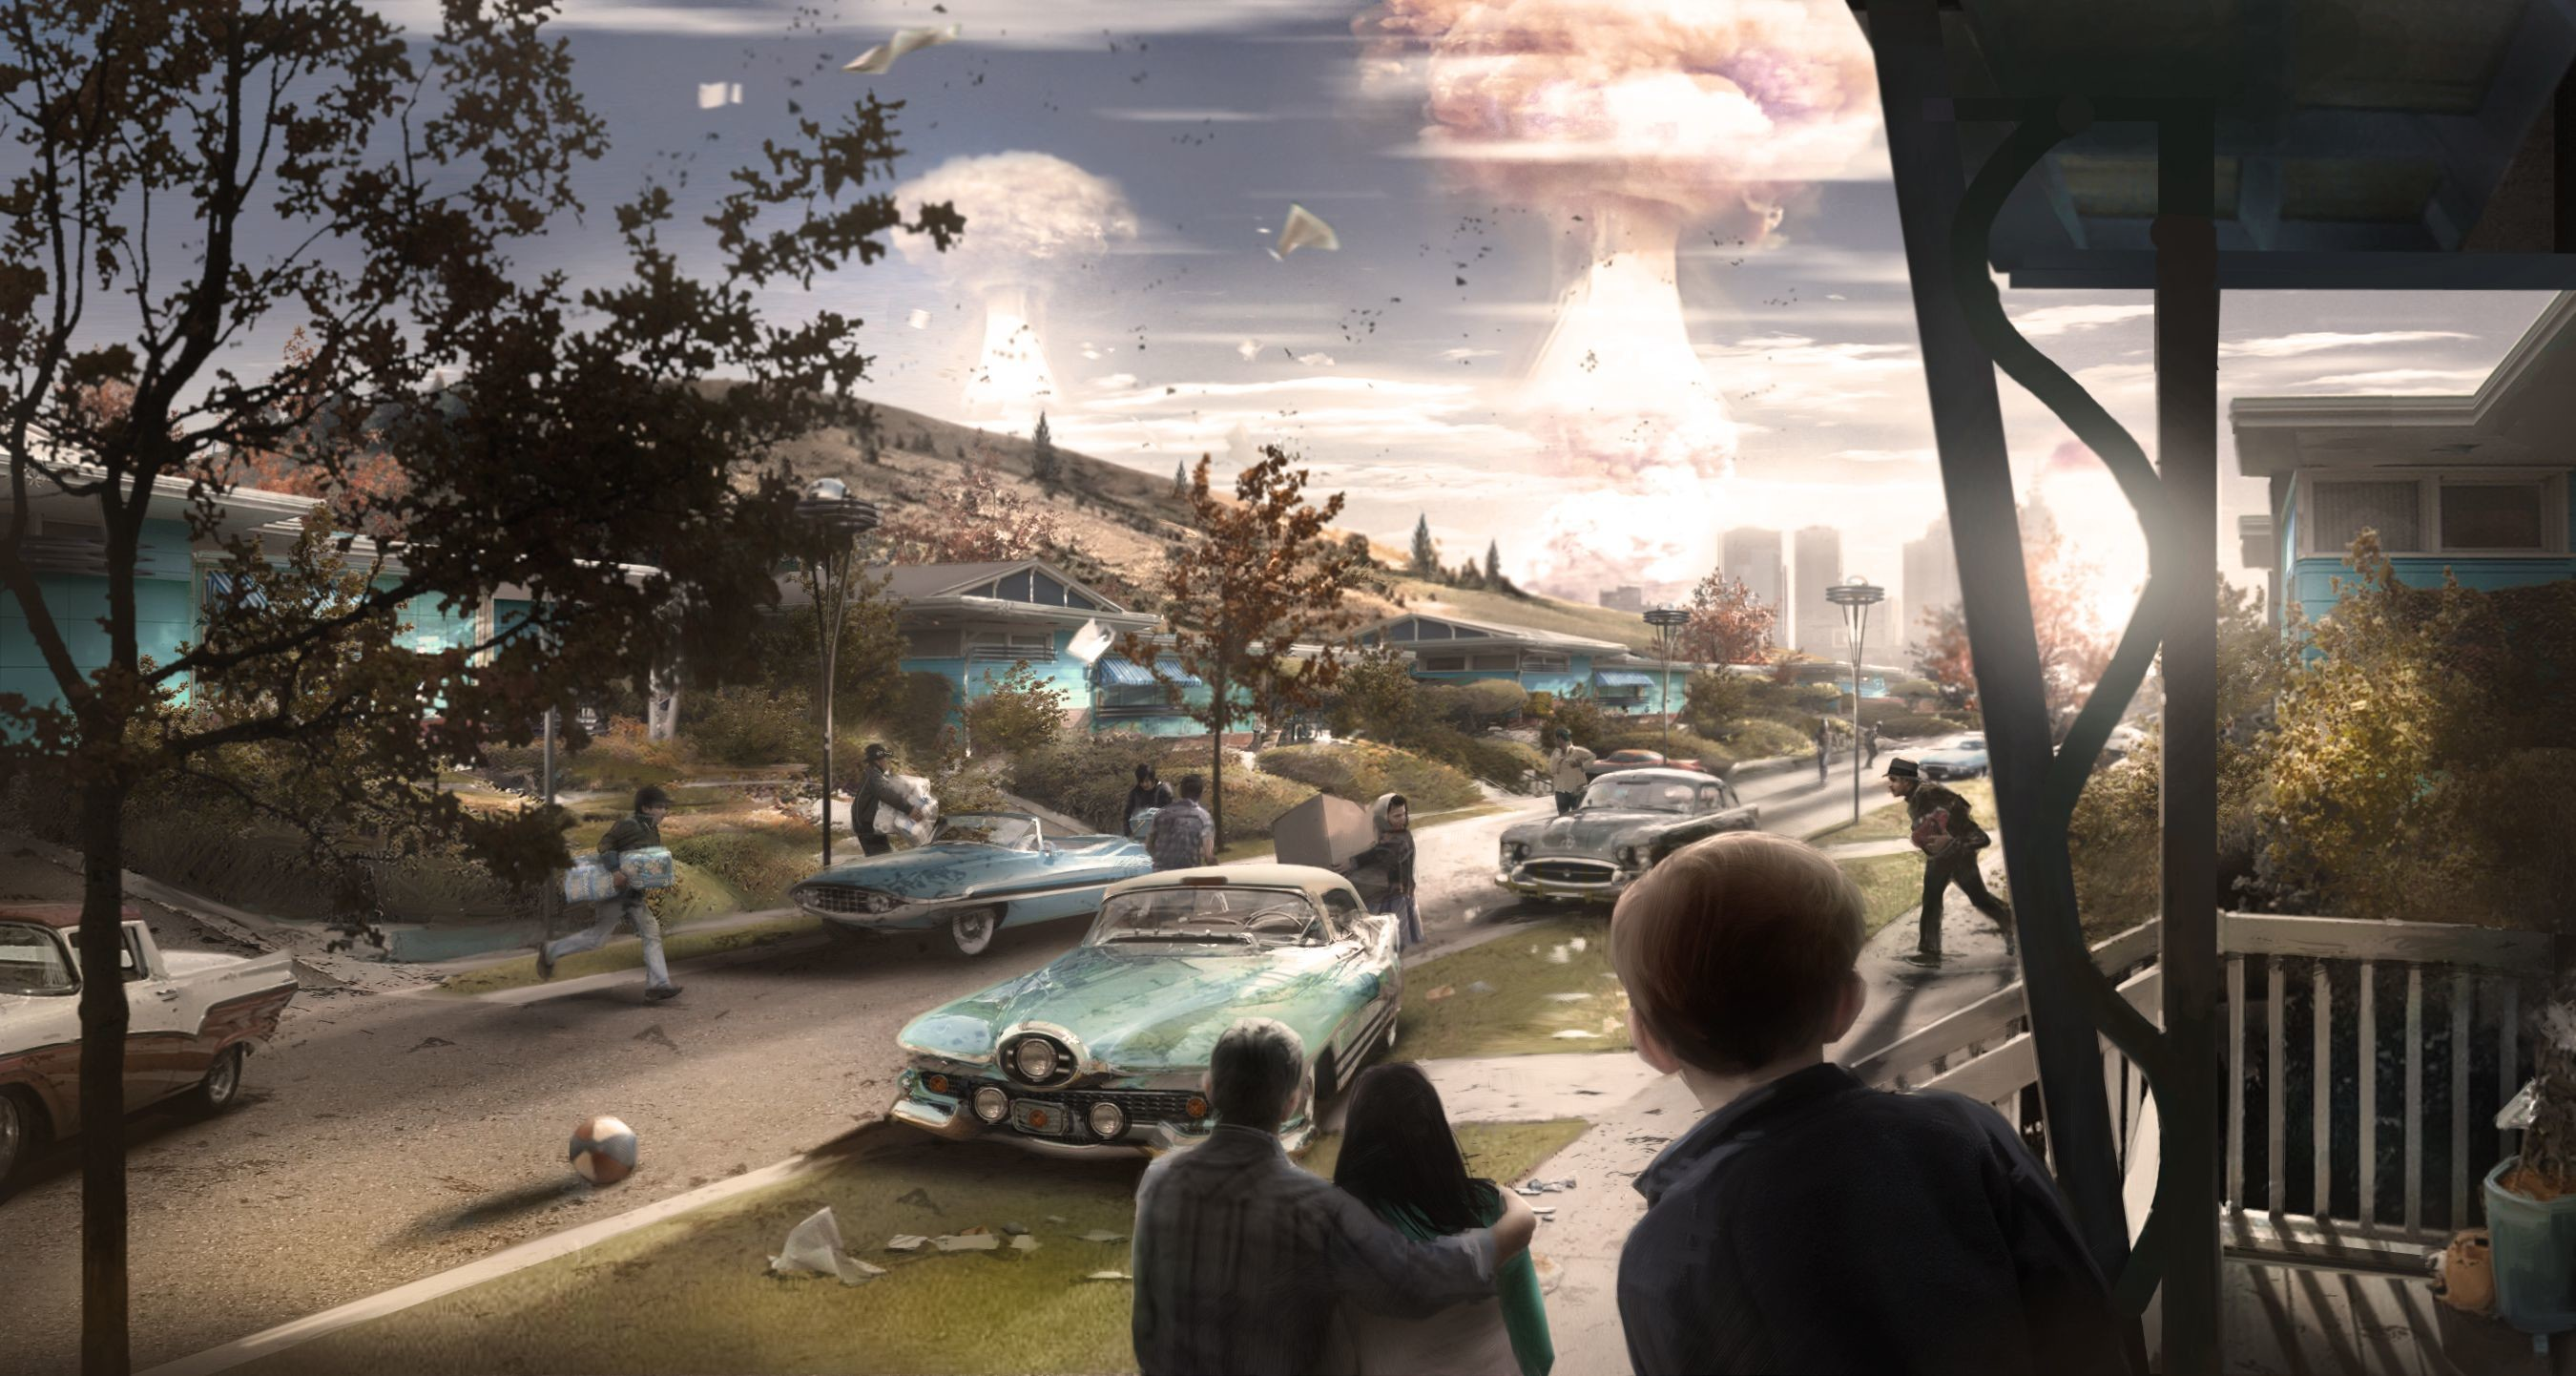 Res: 2700x1442, Fallout 4's concept art is wallpaper worthy